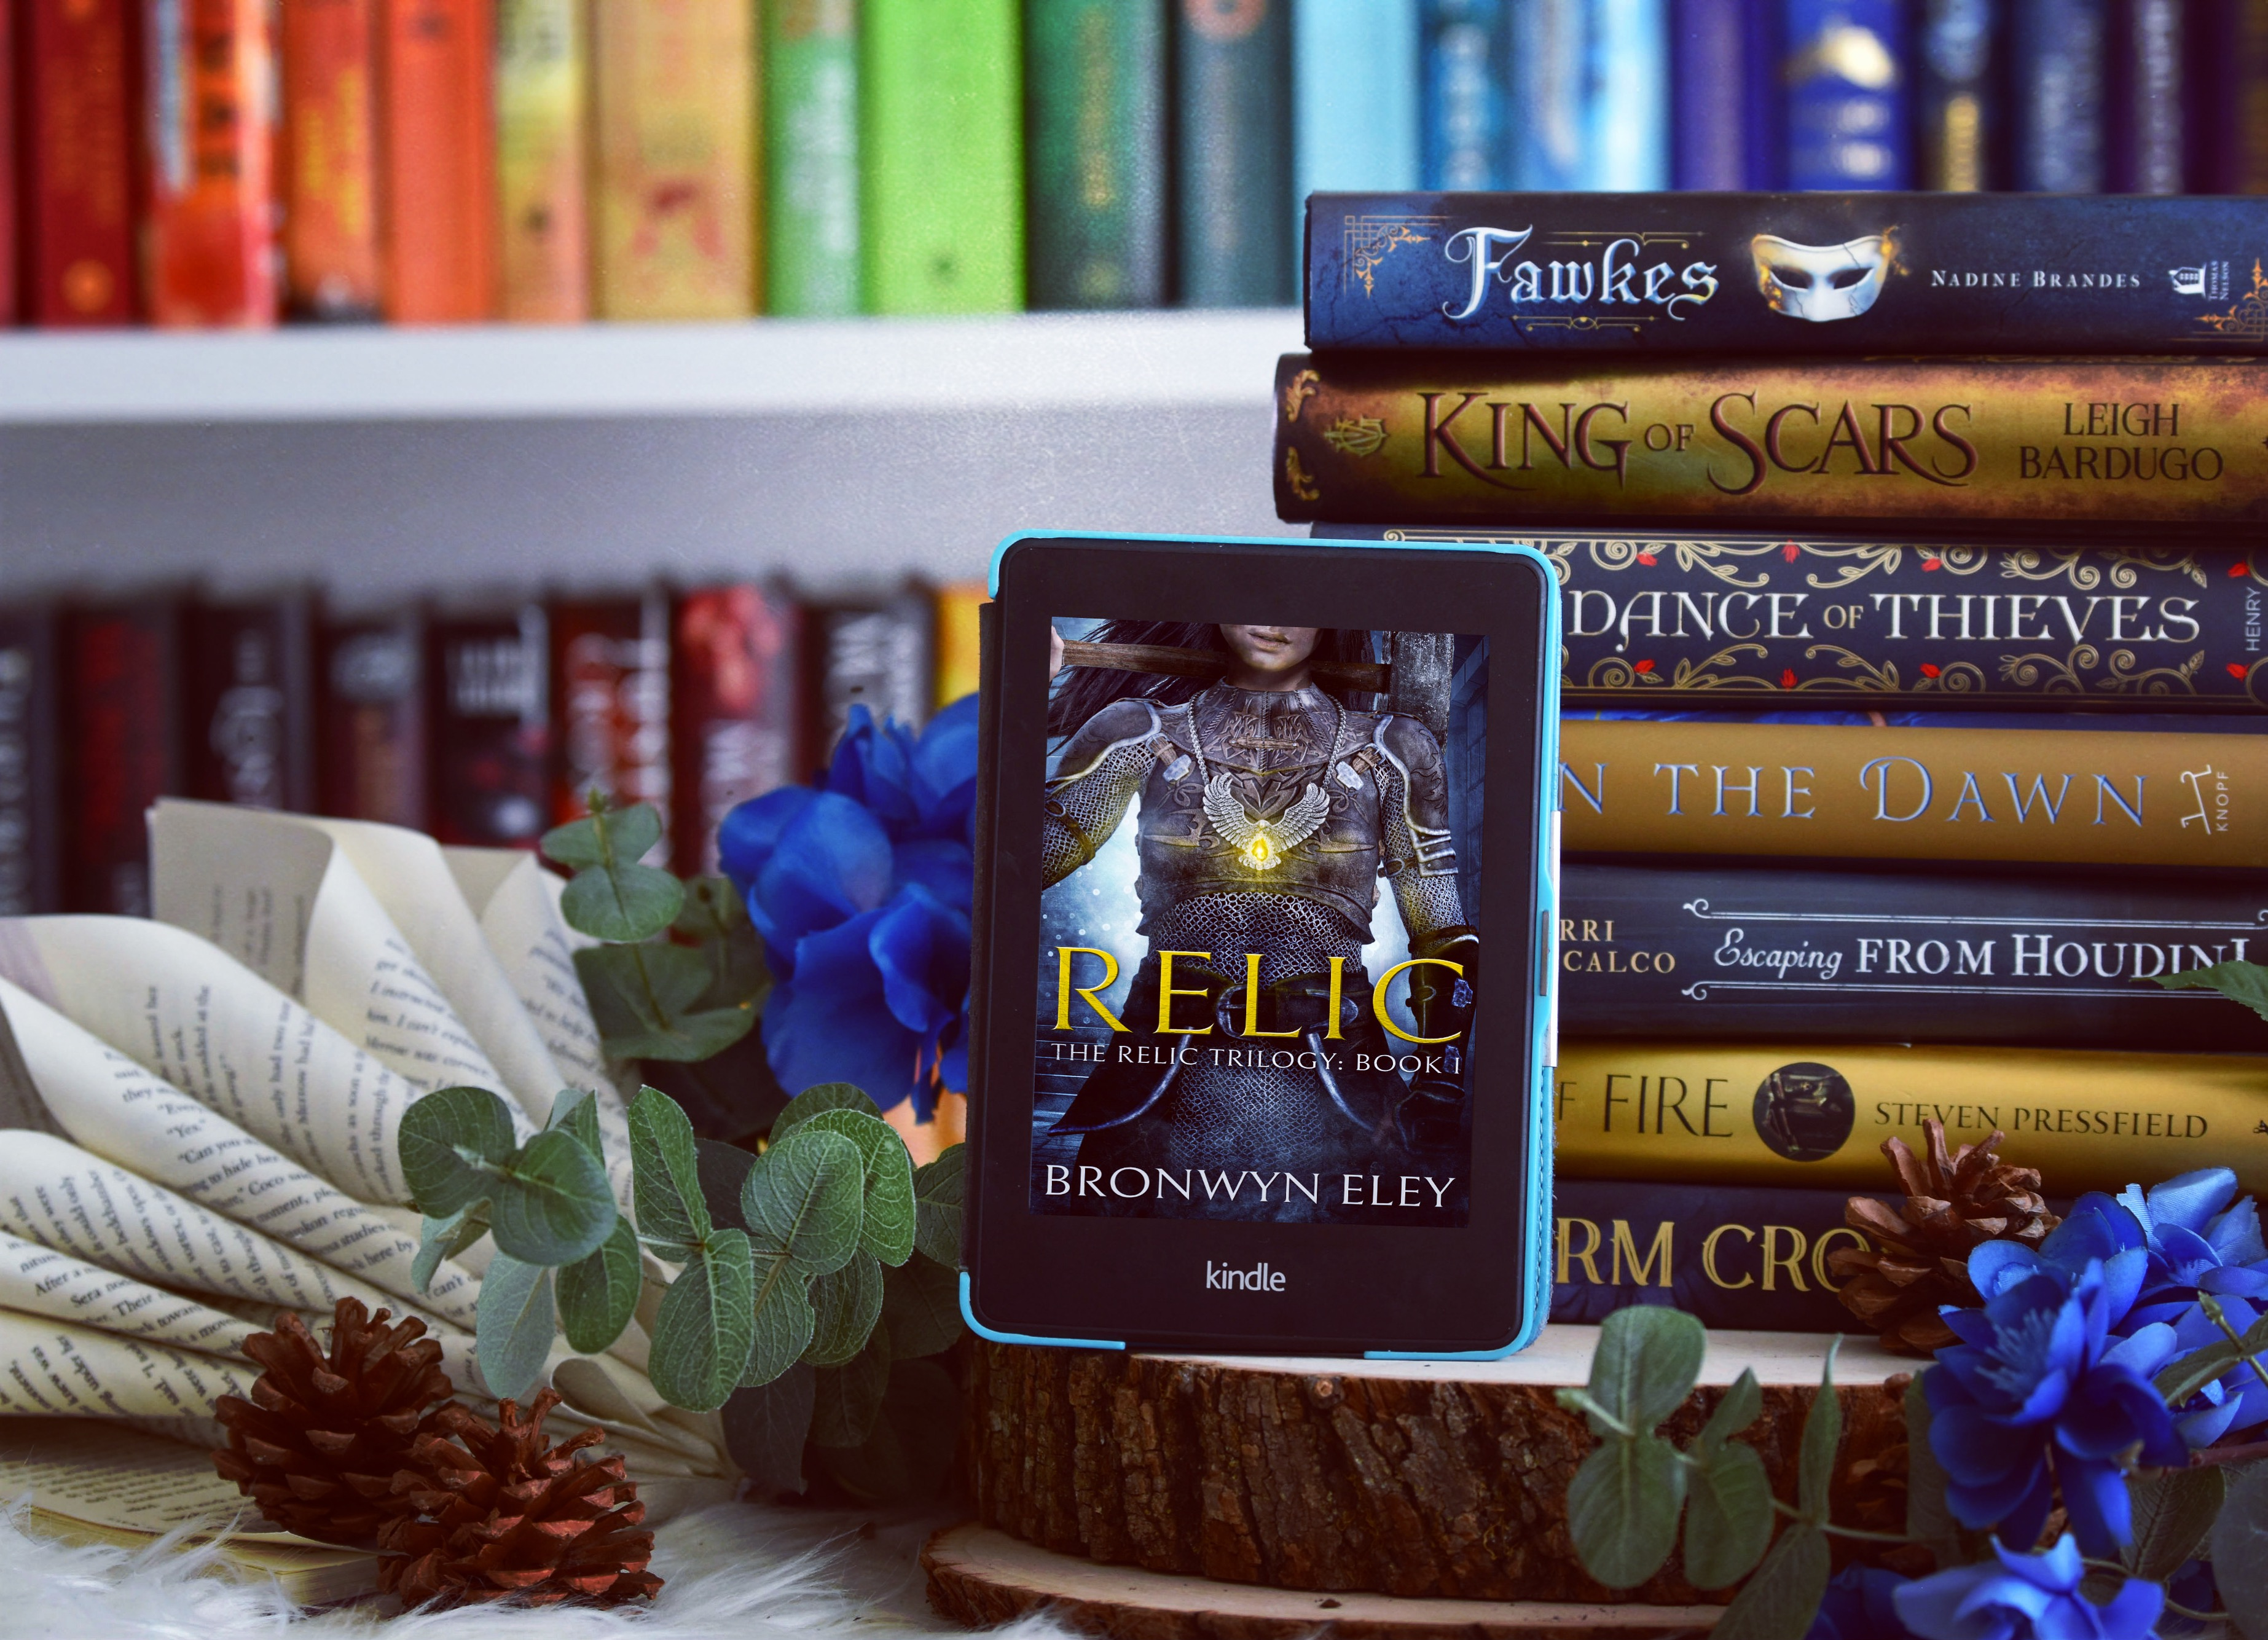 RELIC by Bronwyn Eley | Spoiler Free ARC Review